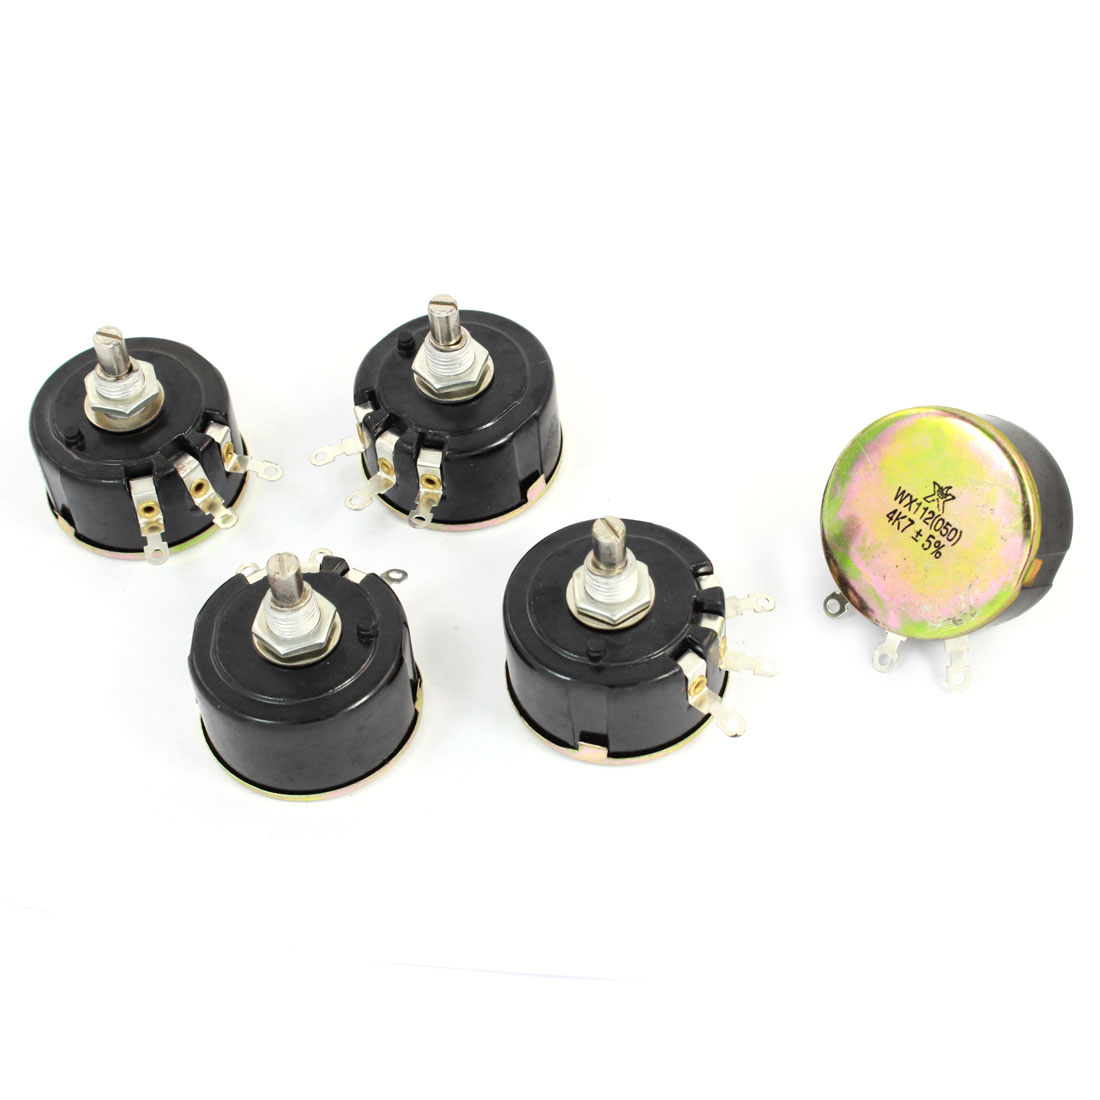 5 Watt 4.7K Ohm Variable Resistor 3 Pin Wire Wound Potentiometer WX112(050) 5pcs